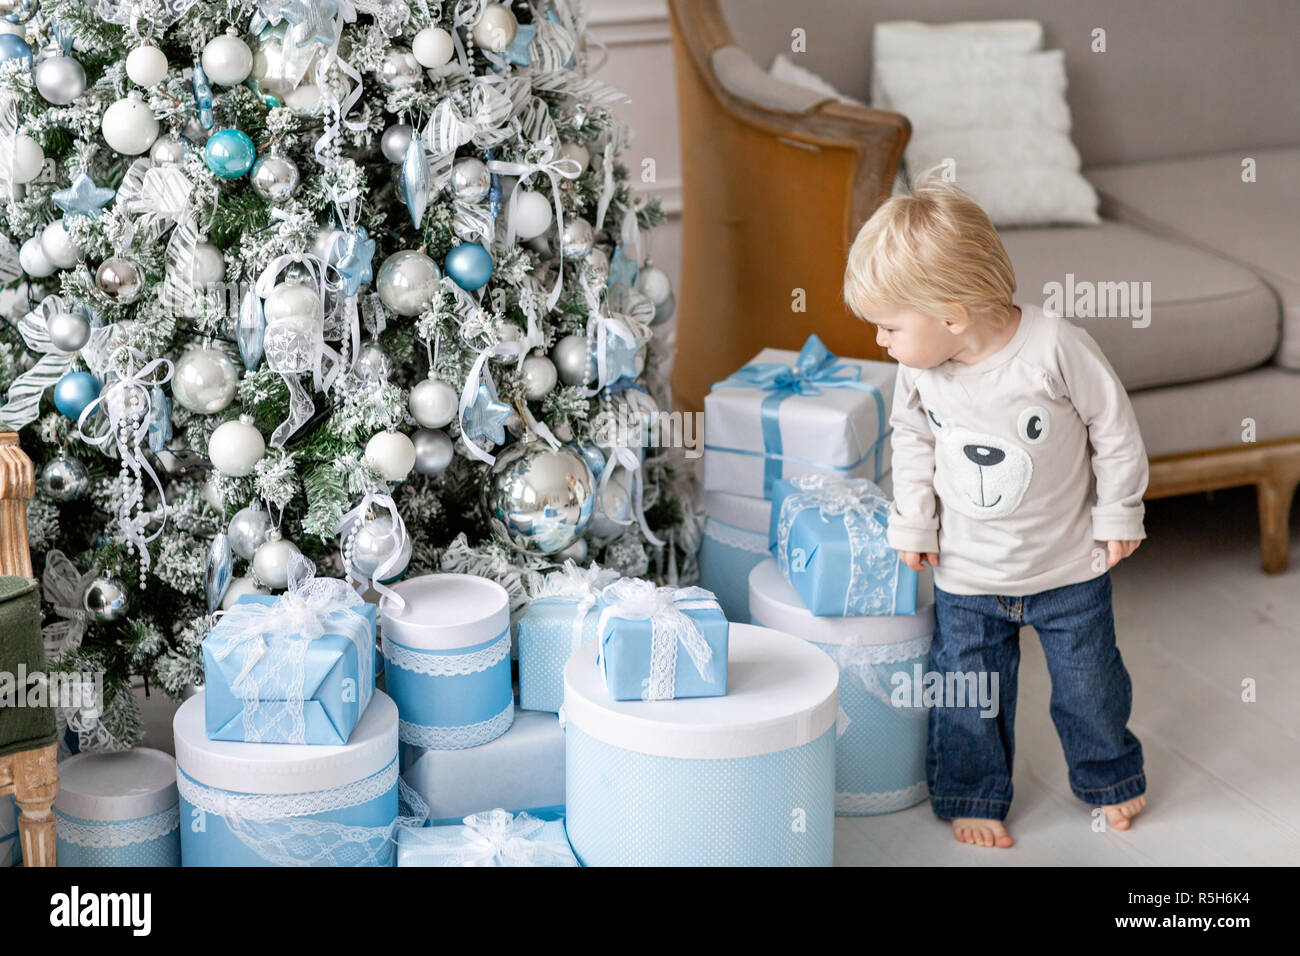 A Little Boy Stands Near A Lot Of Gifts Happy New Year Decorated